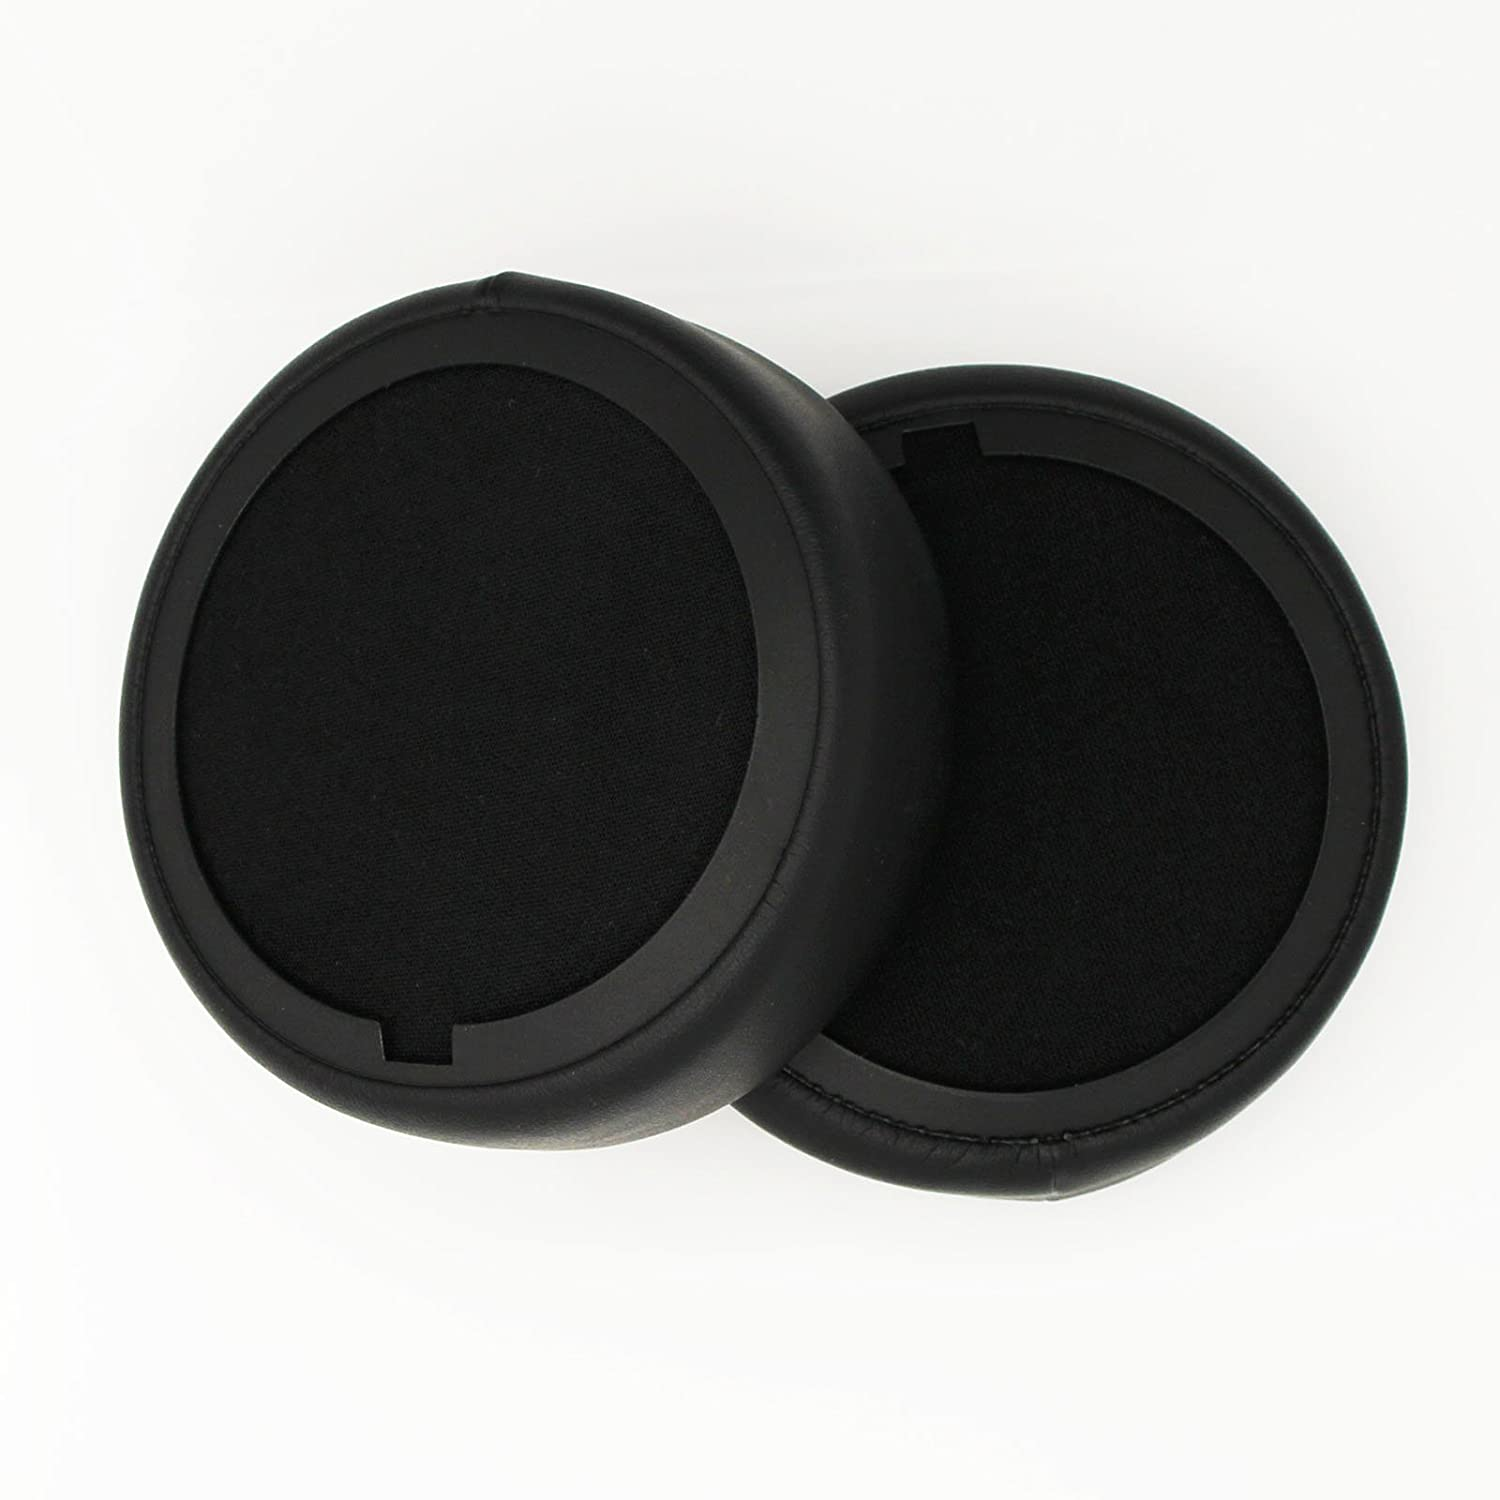 New Earpads Replacement Ear Pads Cushion for Sony MDR-XB950BT//B Extra Bass Bluetooth Wireless Headphones